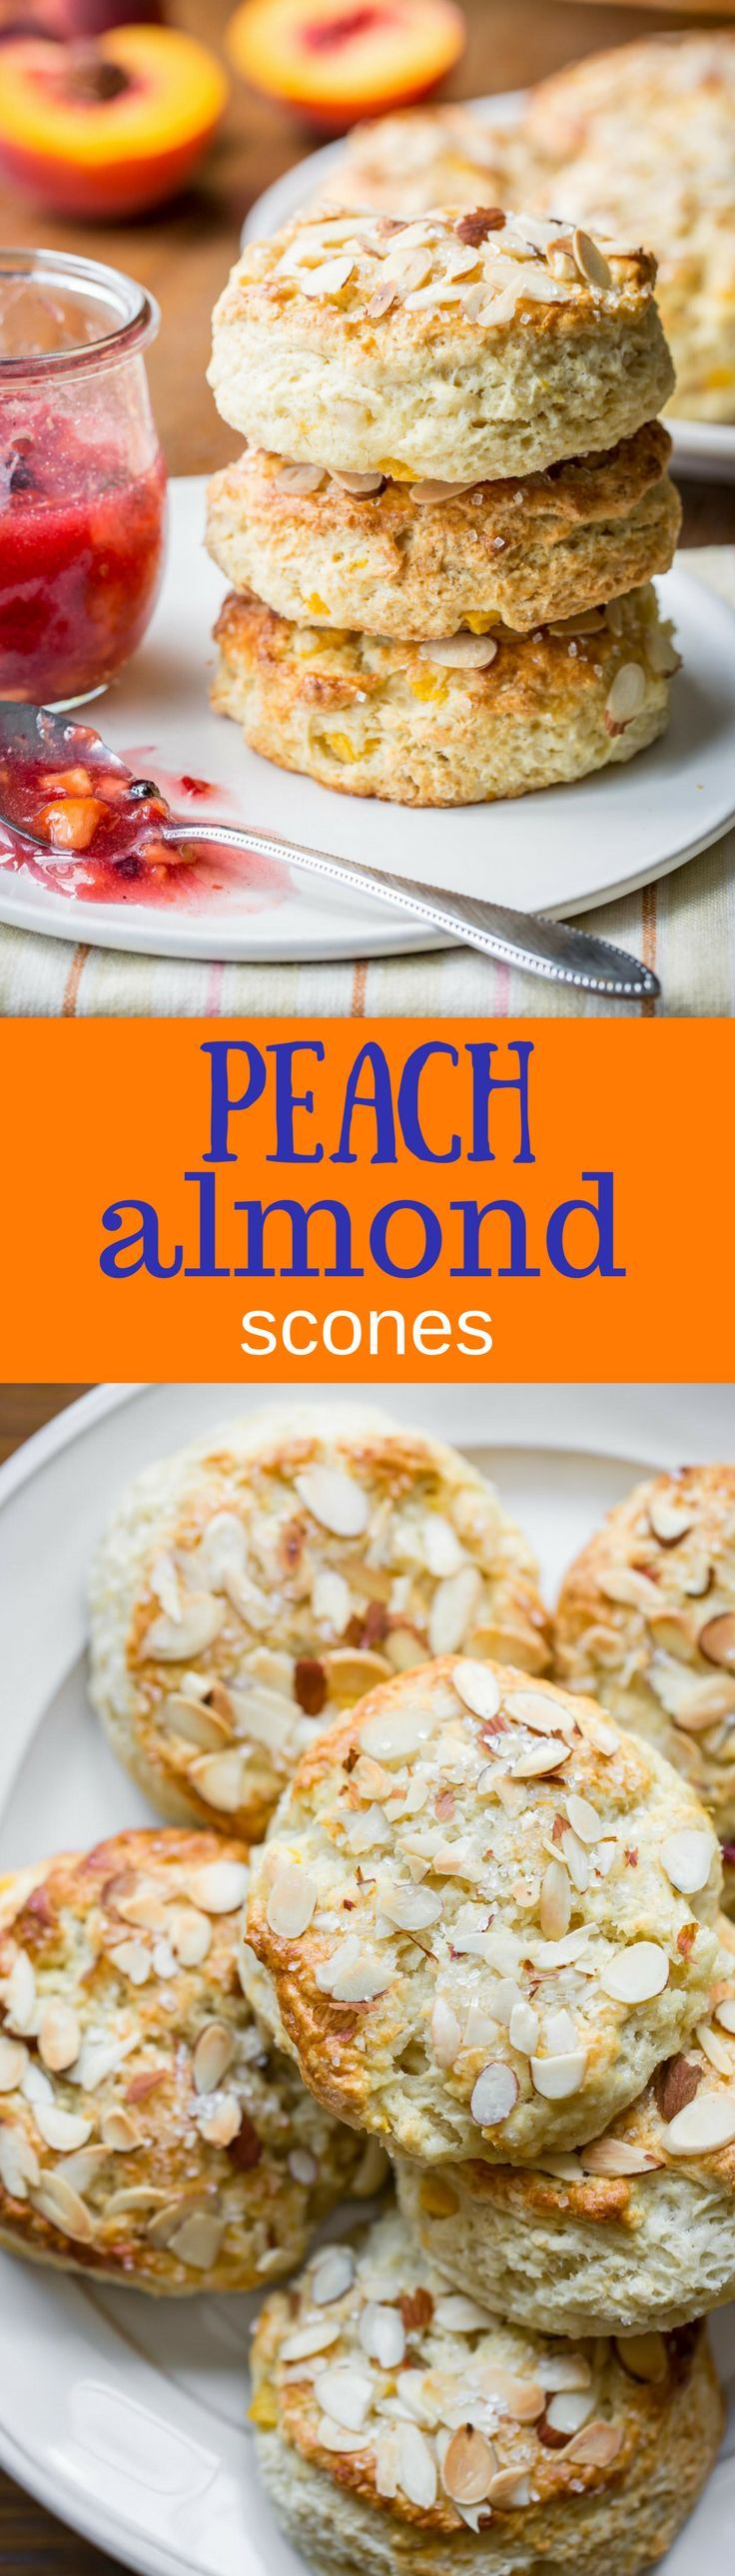 Almond Peach Scones ~ made with fresh diced peaches, grated almond paste and buttermilk, these scones are tender and delicious and super easy to make too!